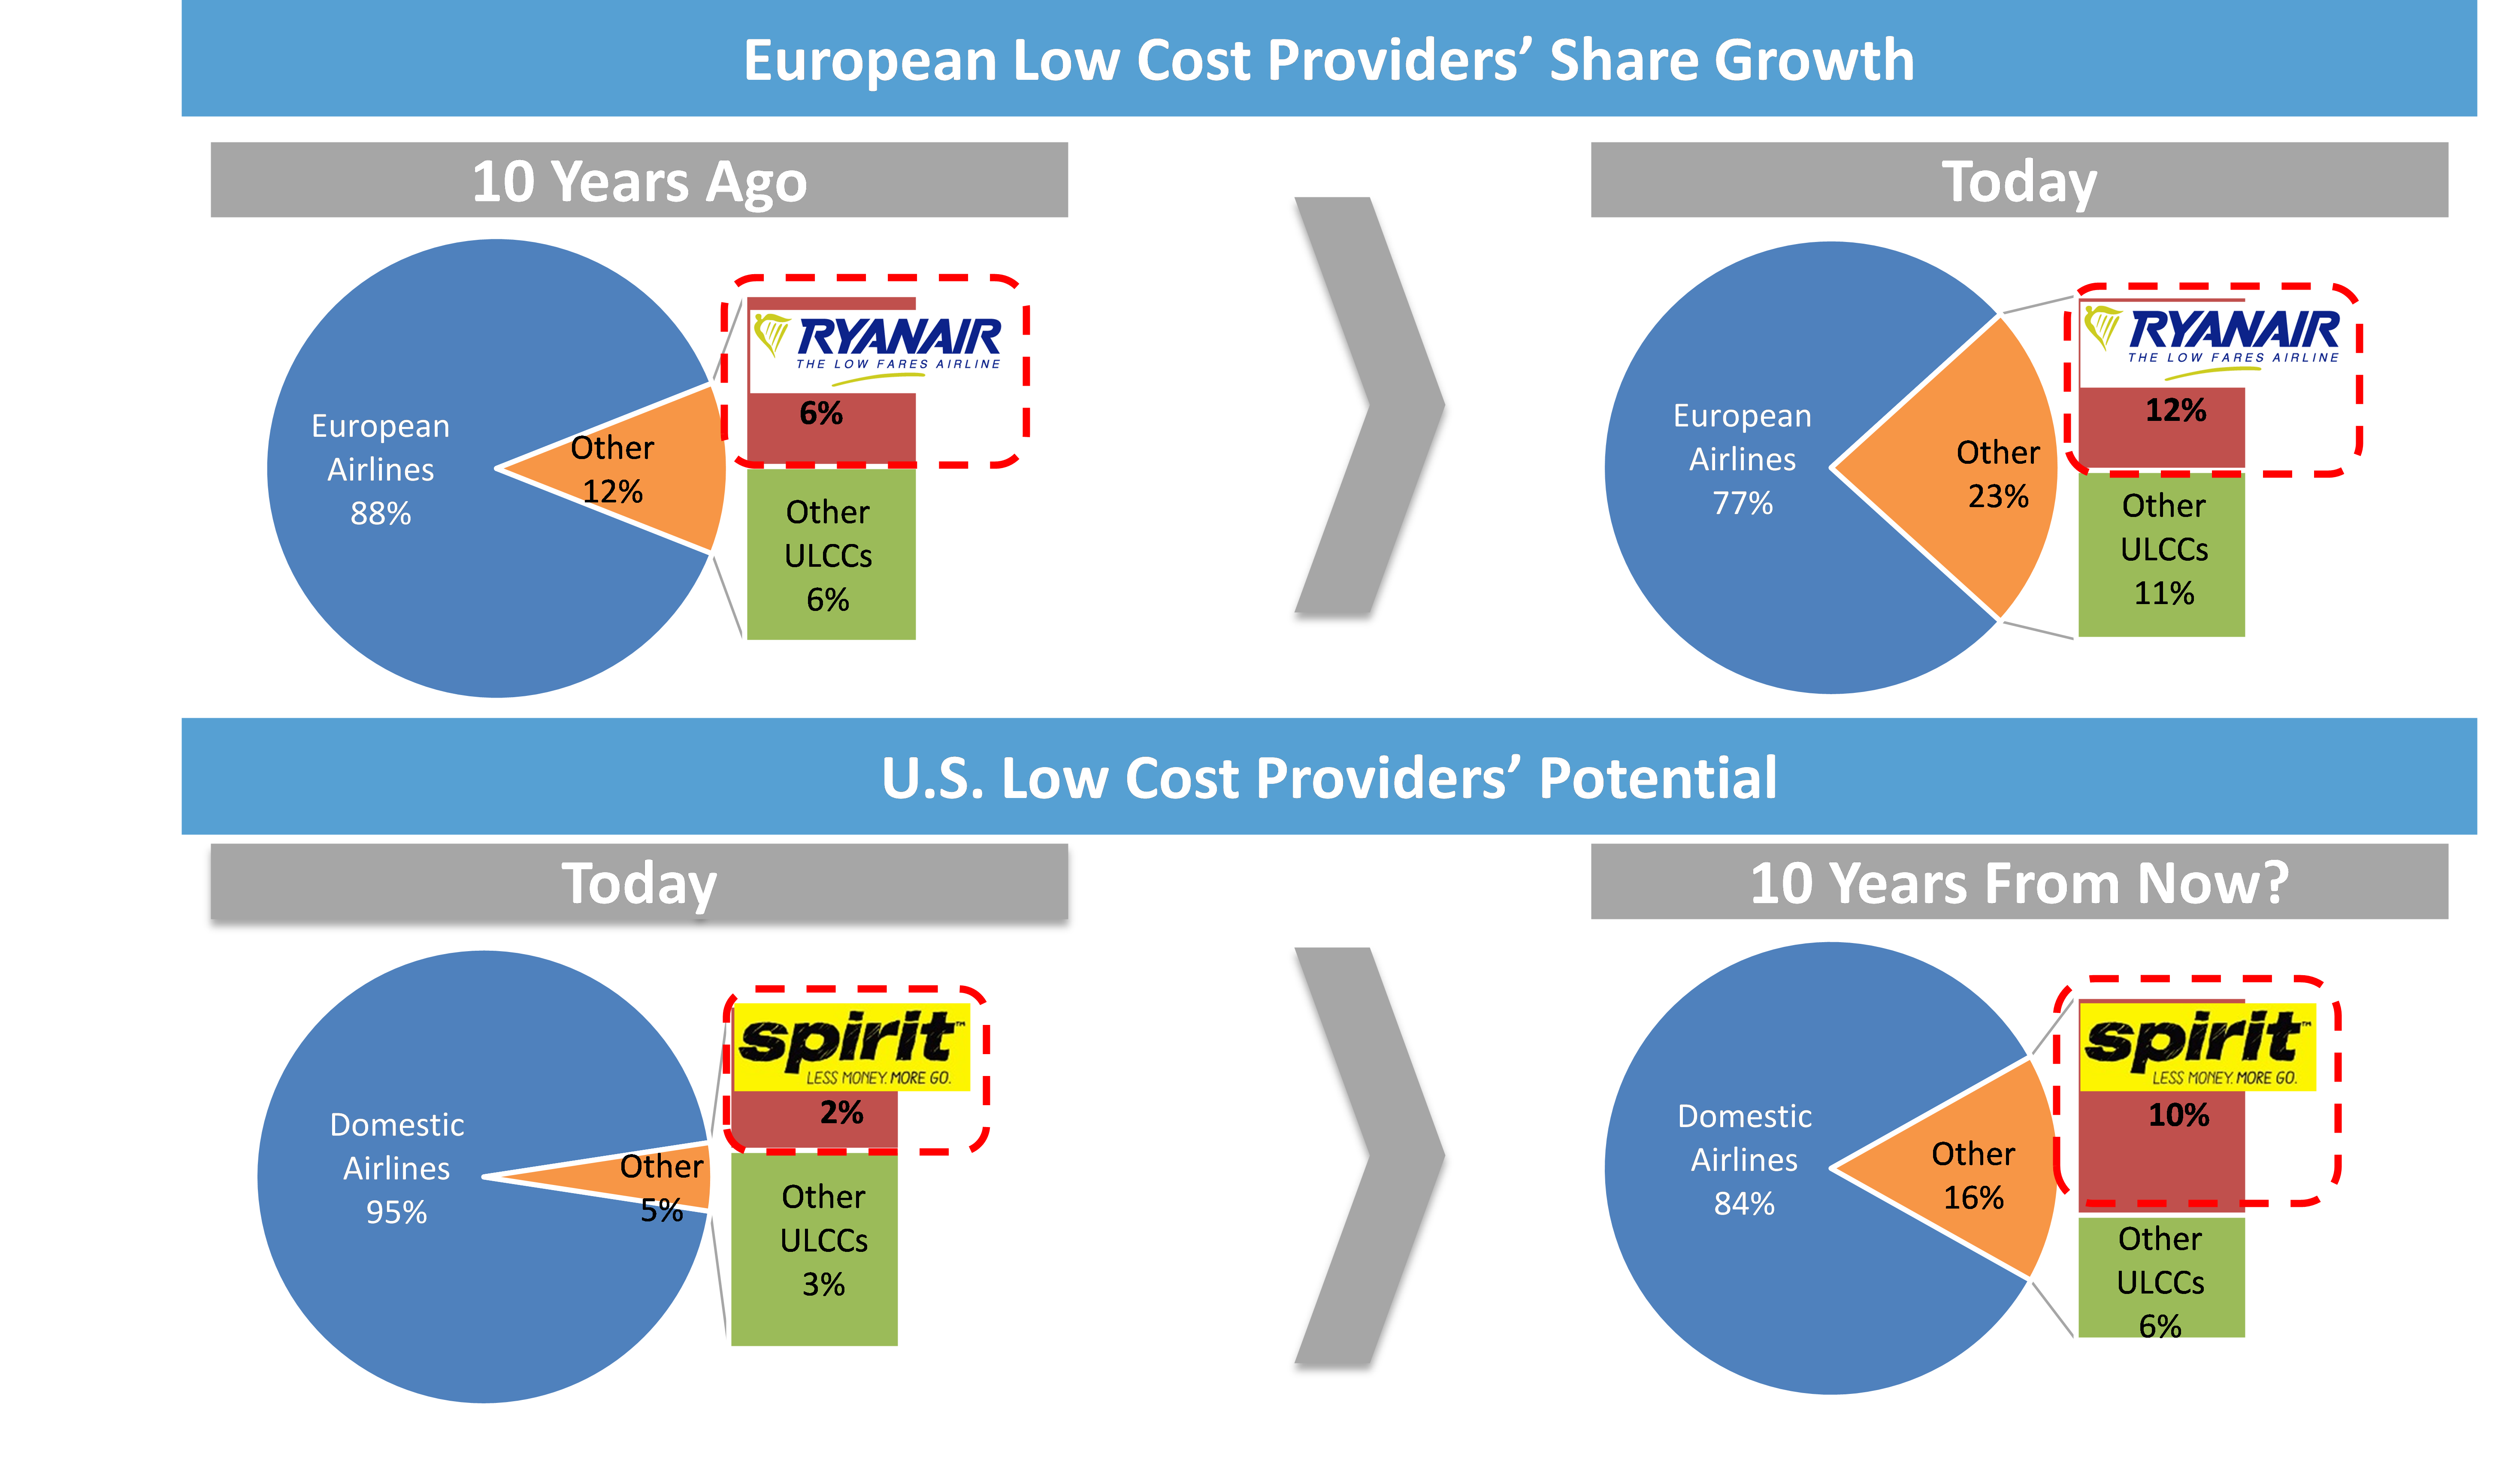 Spirit Airlines Is Poised To Be The Next Ryanair - Spirit Airlines ...